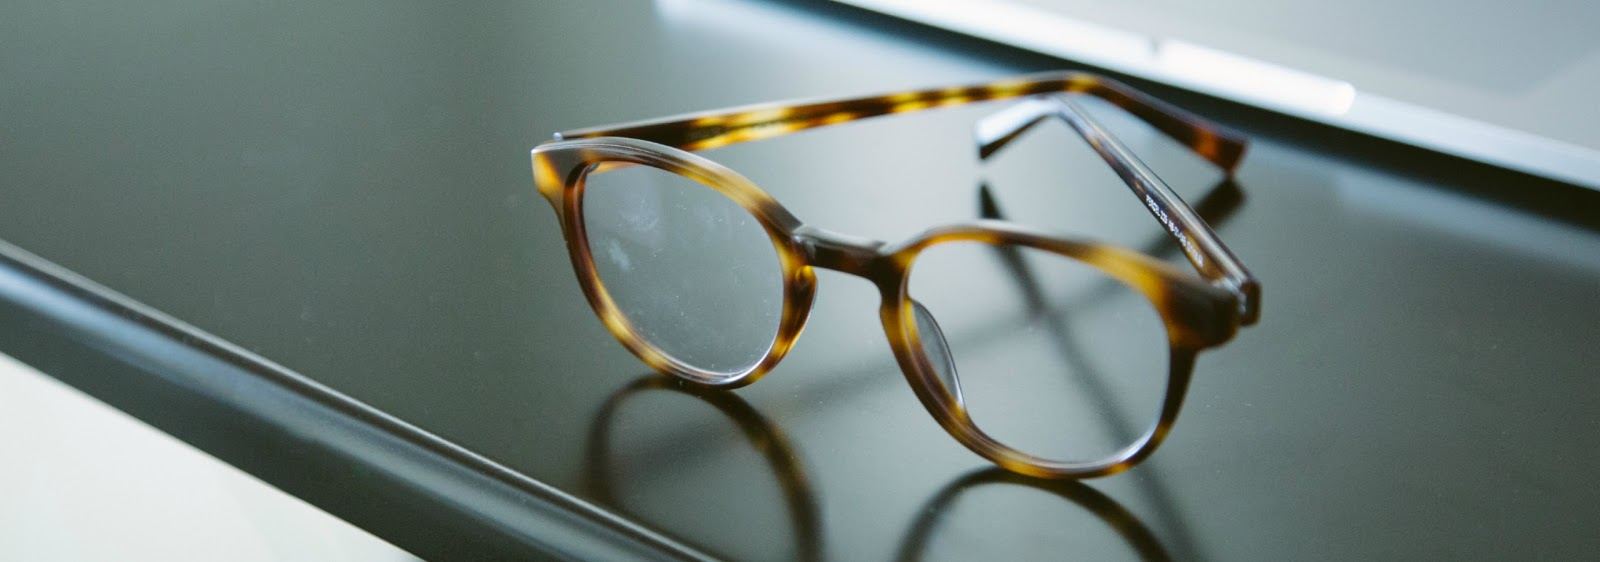 animal print frame glasses on a black desk